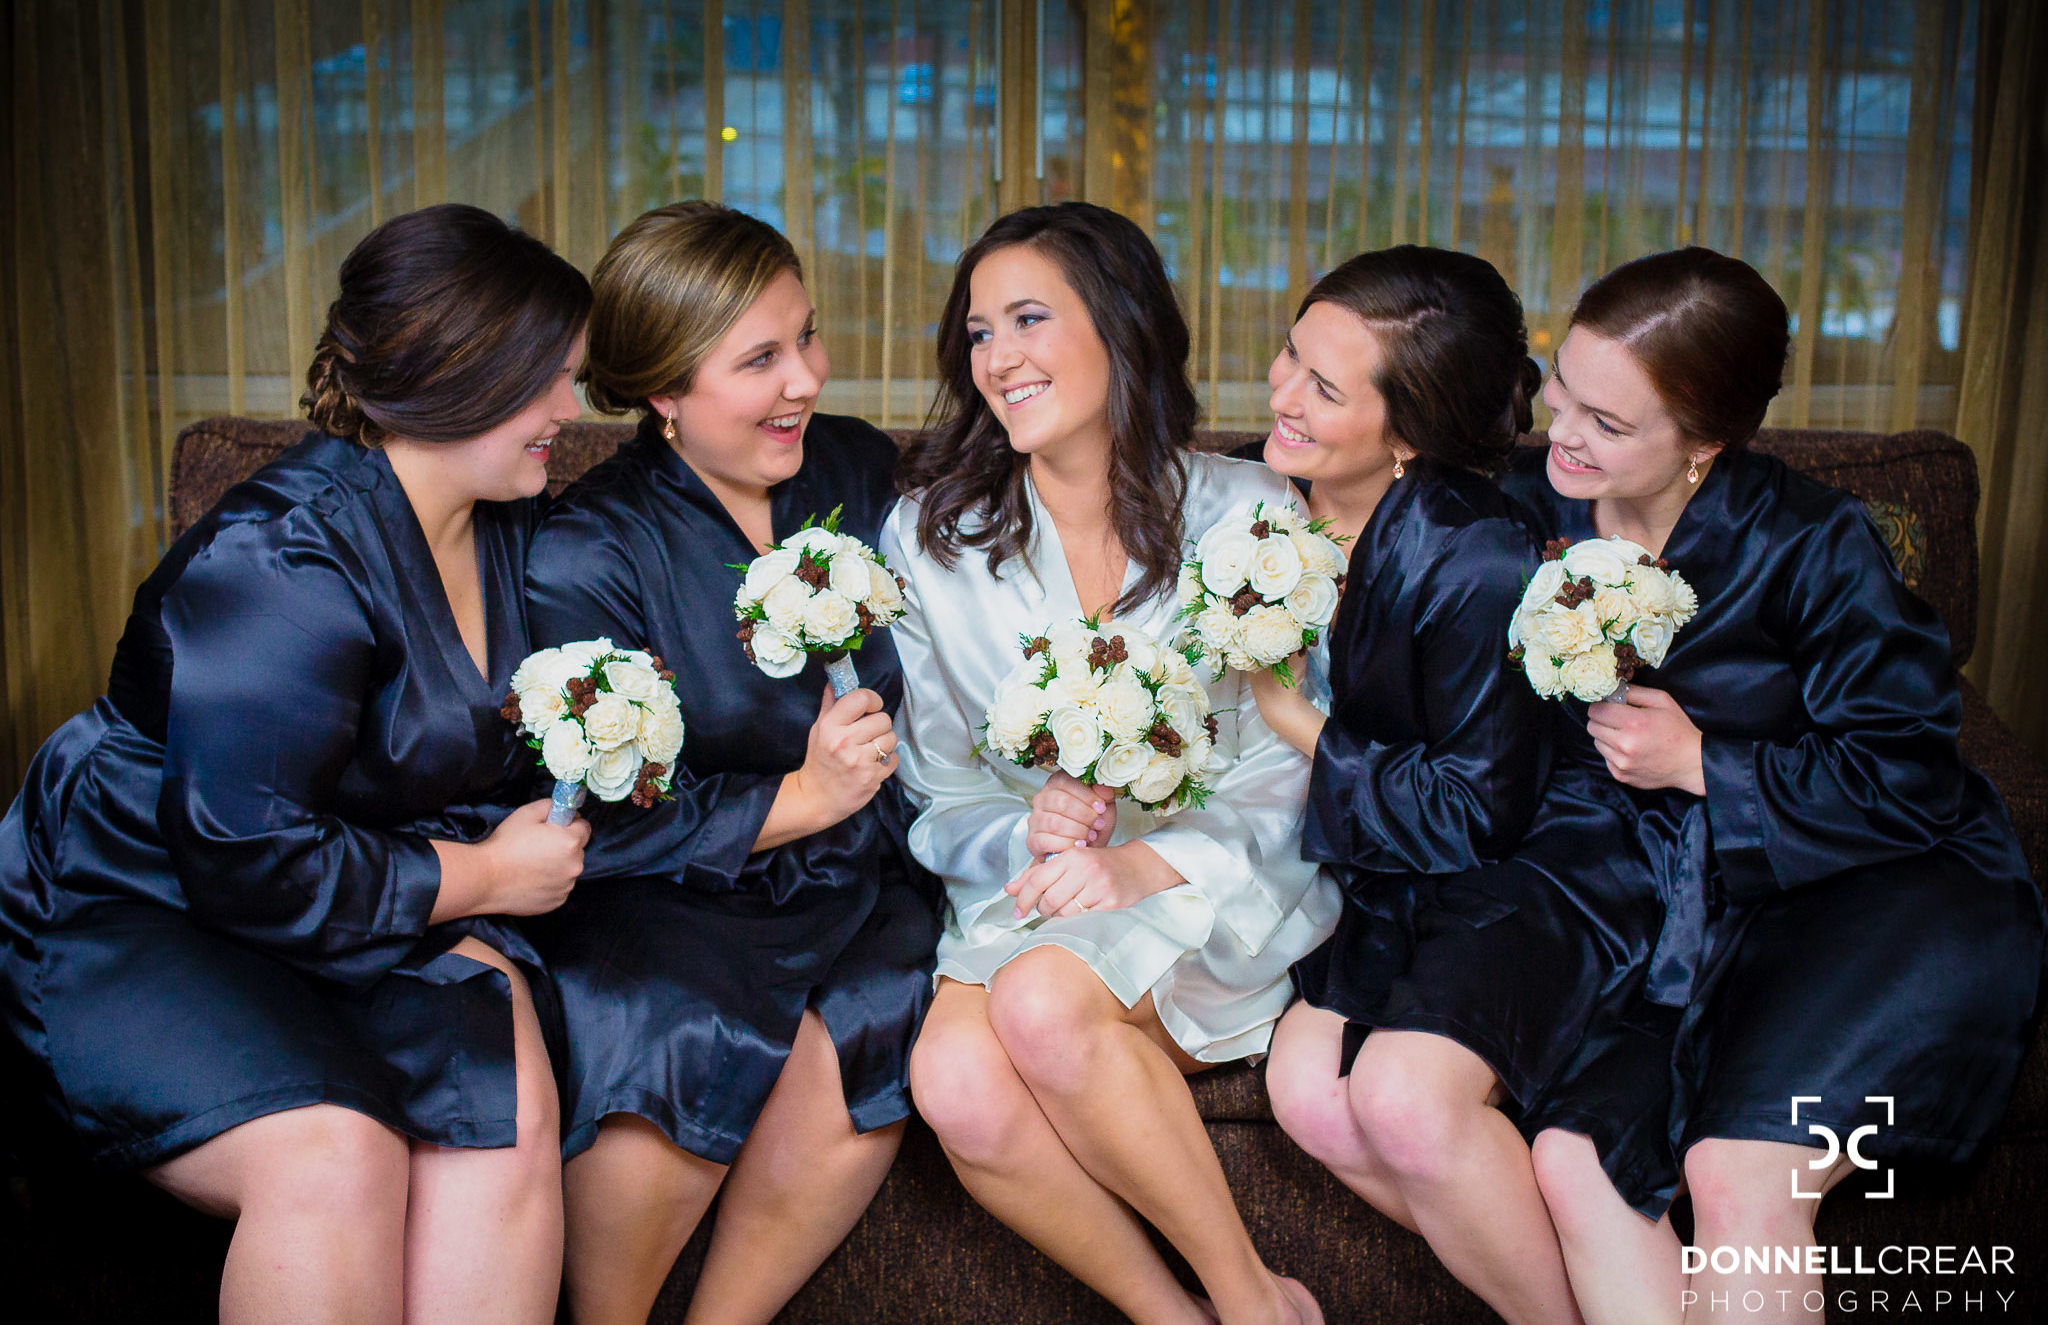 Bridal party embracing each other at their Hyatt Hotel suite before a Commerce Club wedding